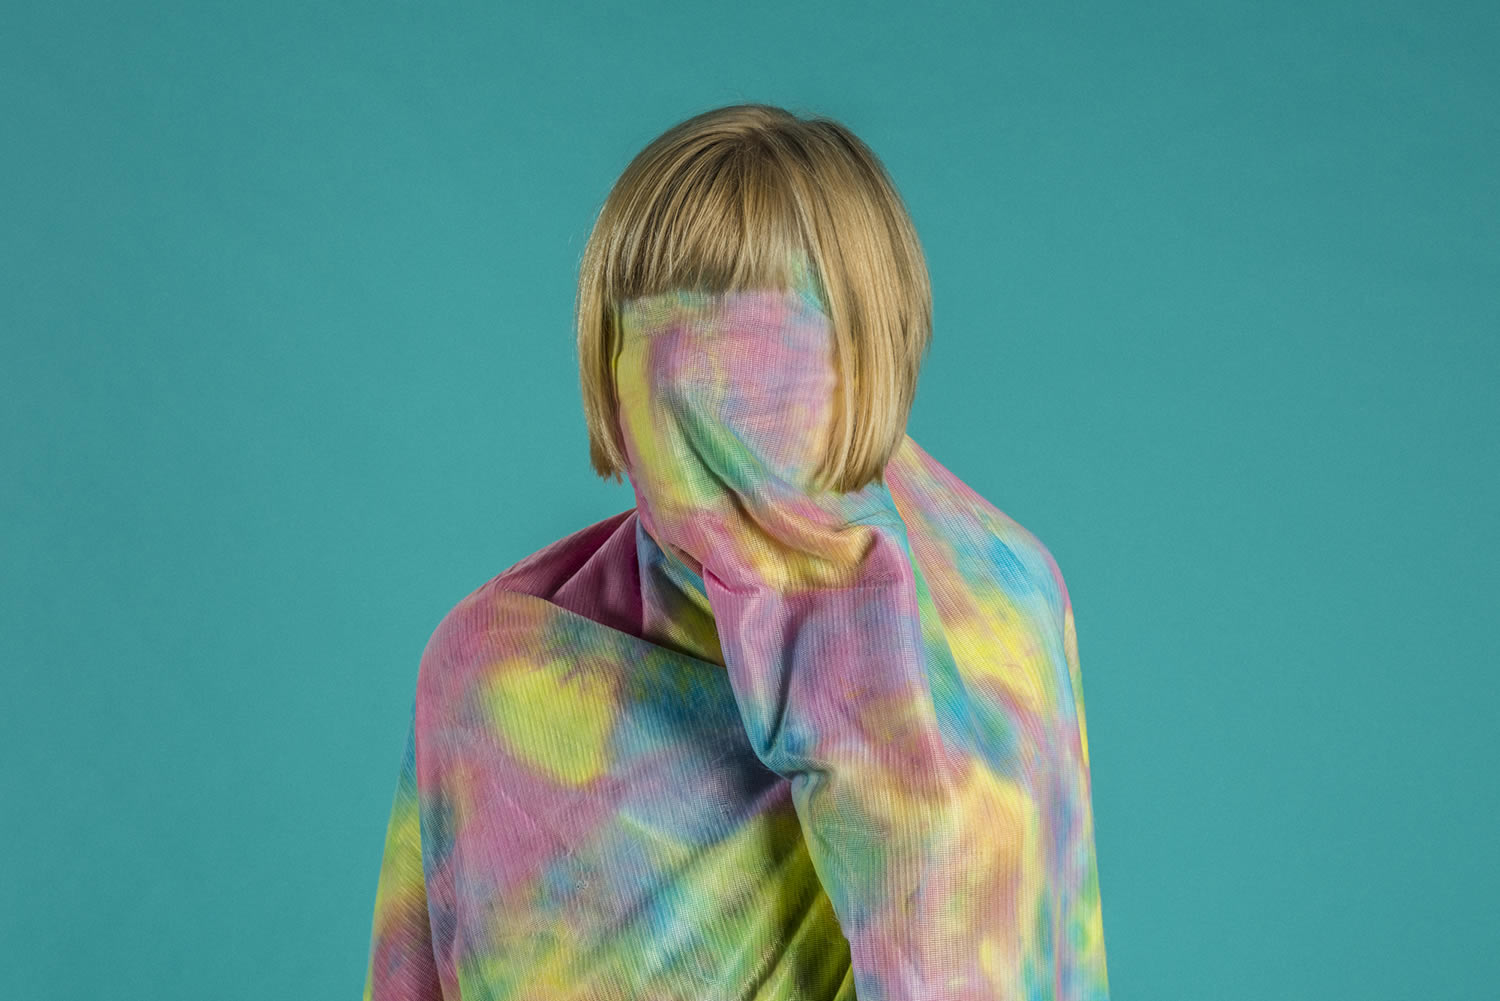 pastel camouflage cloth over human body